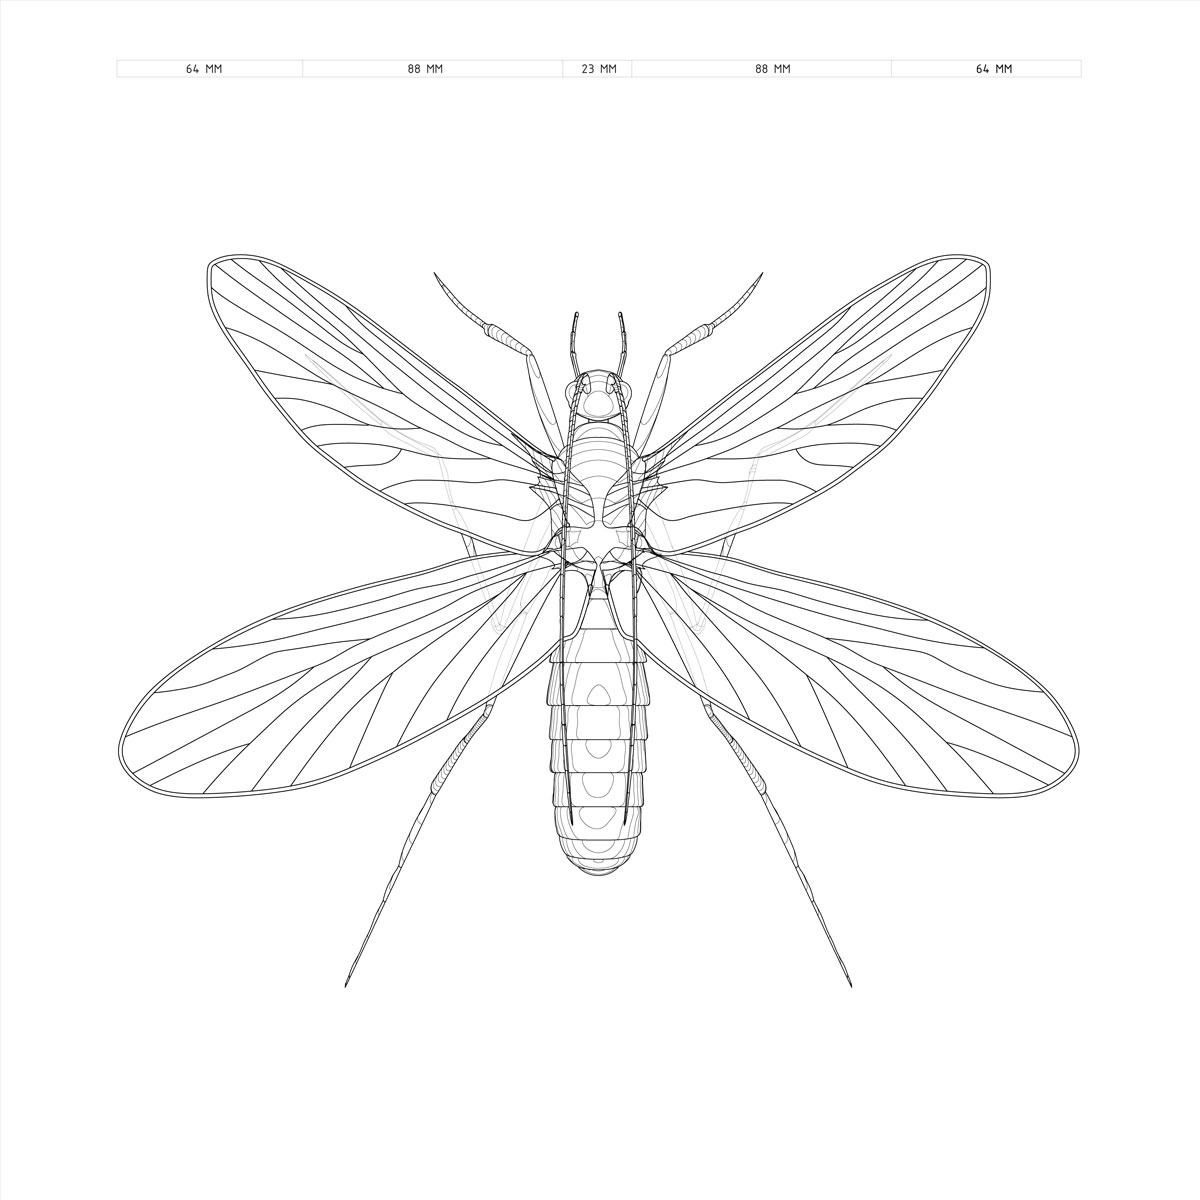 Firefly Insect Drawing at GetDrawings | Free download